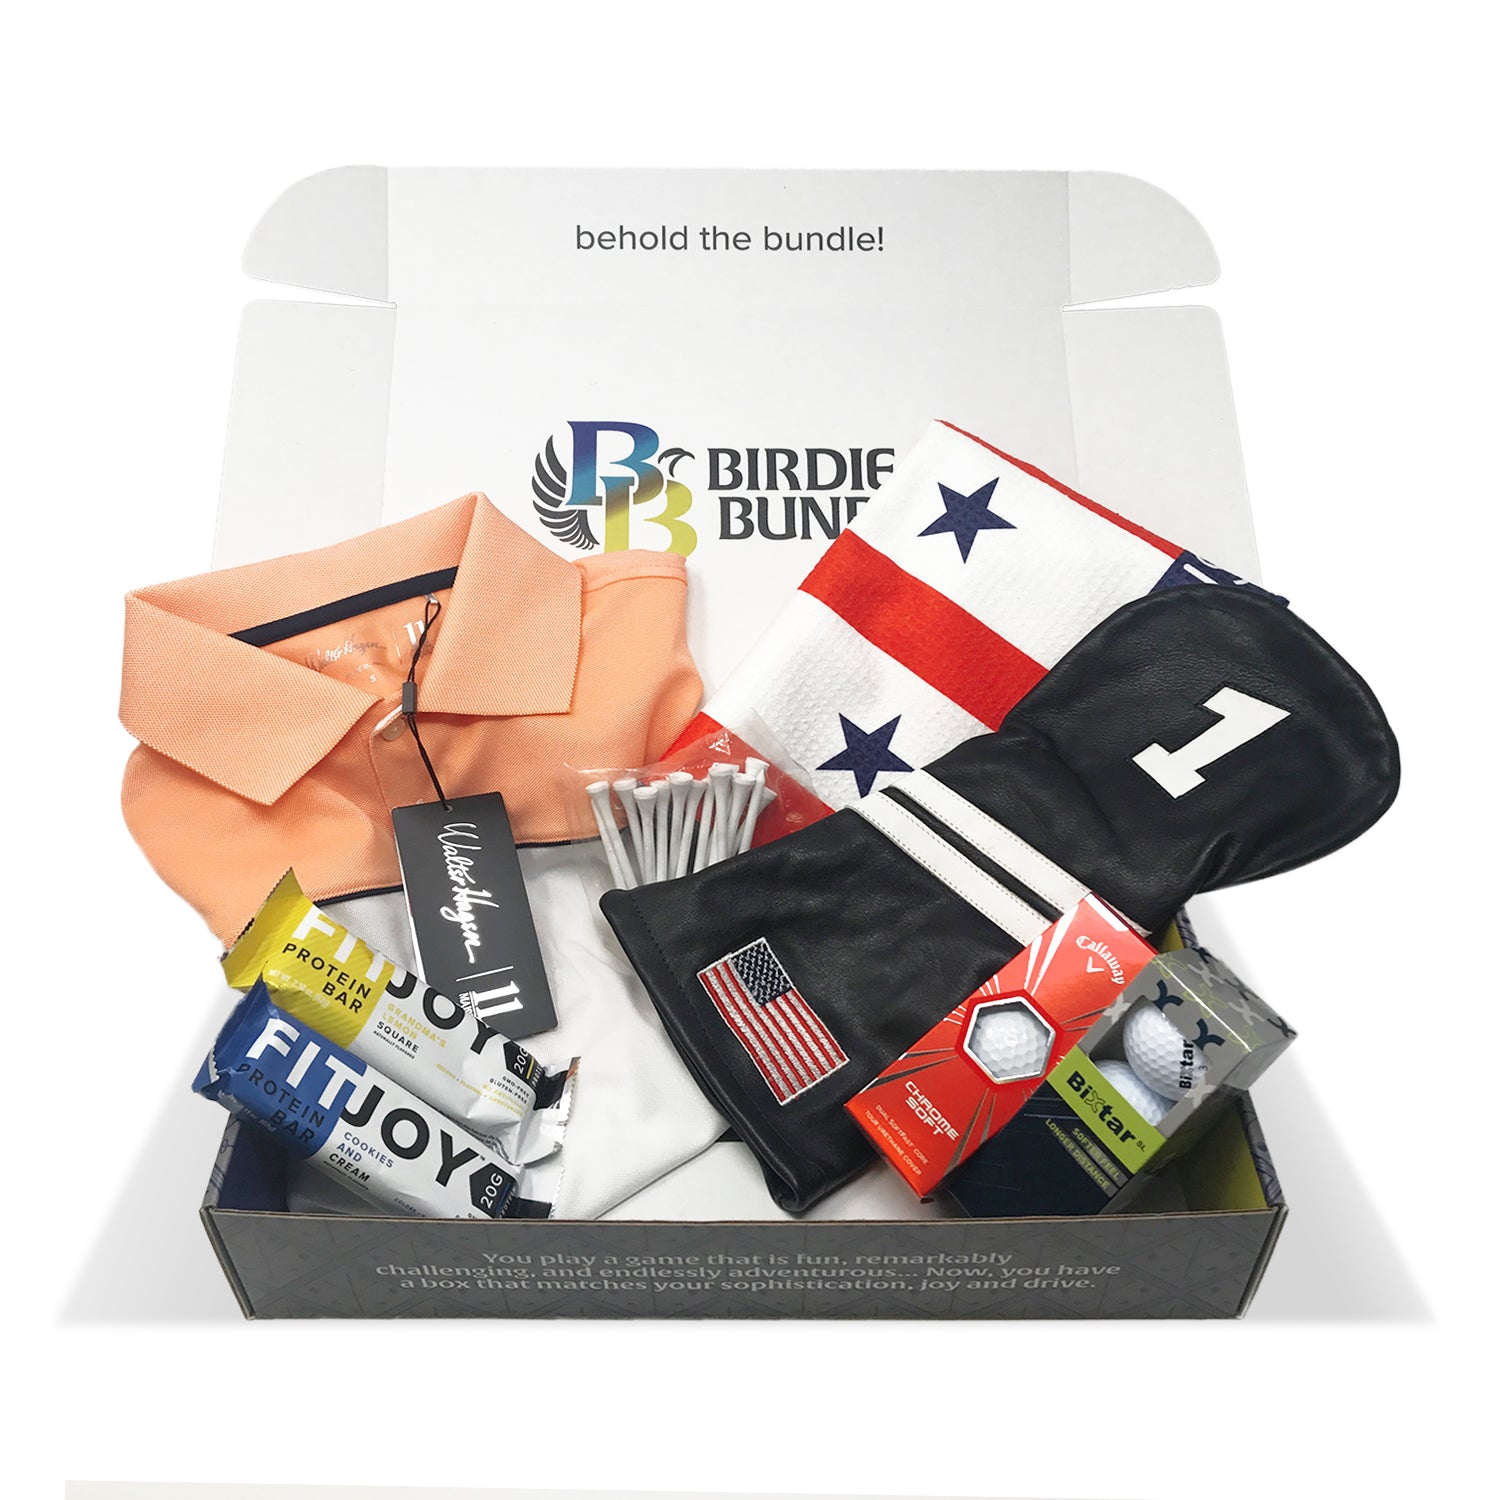 mens golf gift box